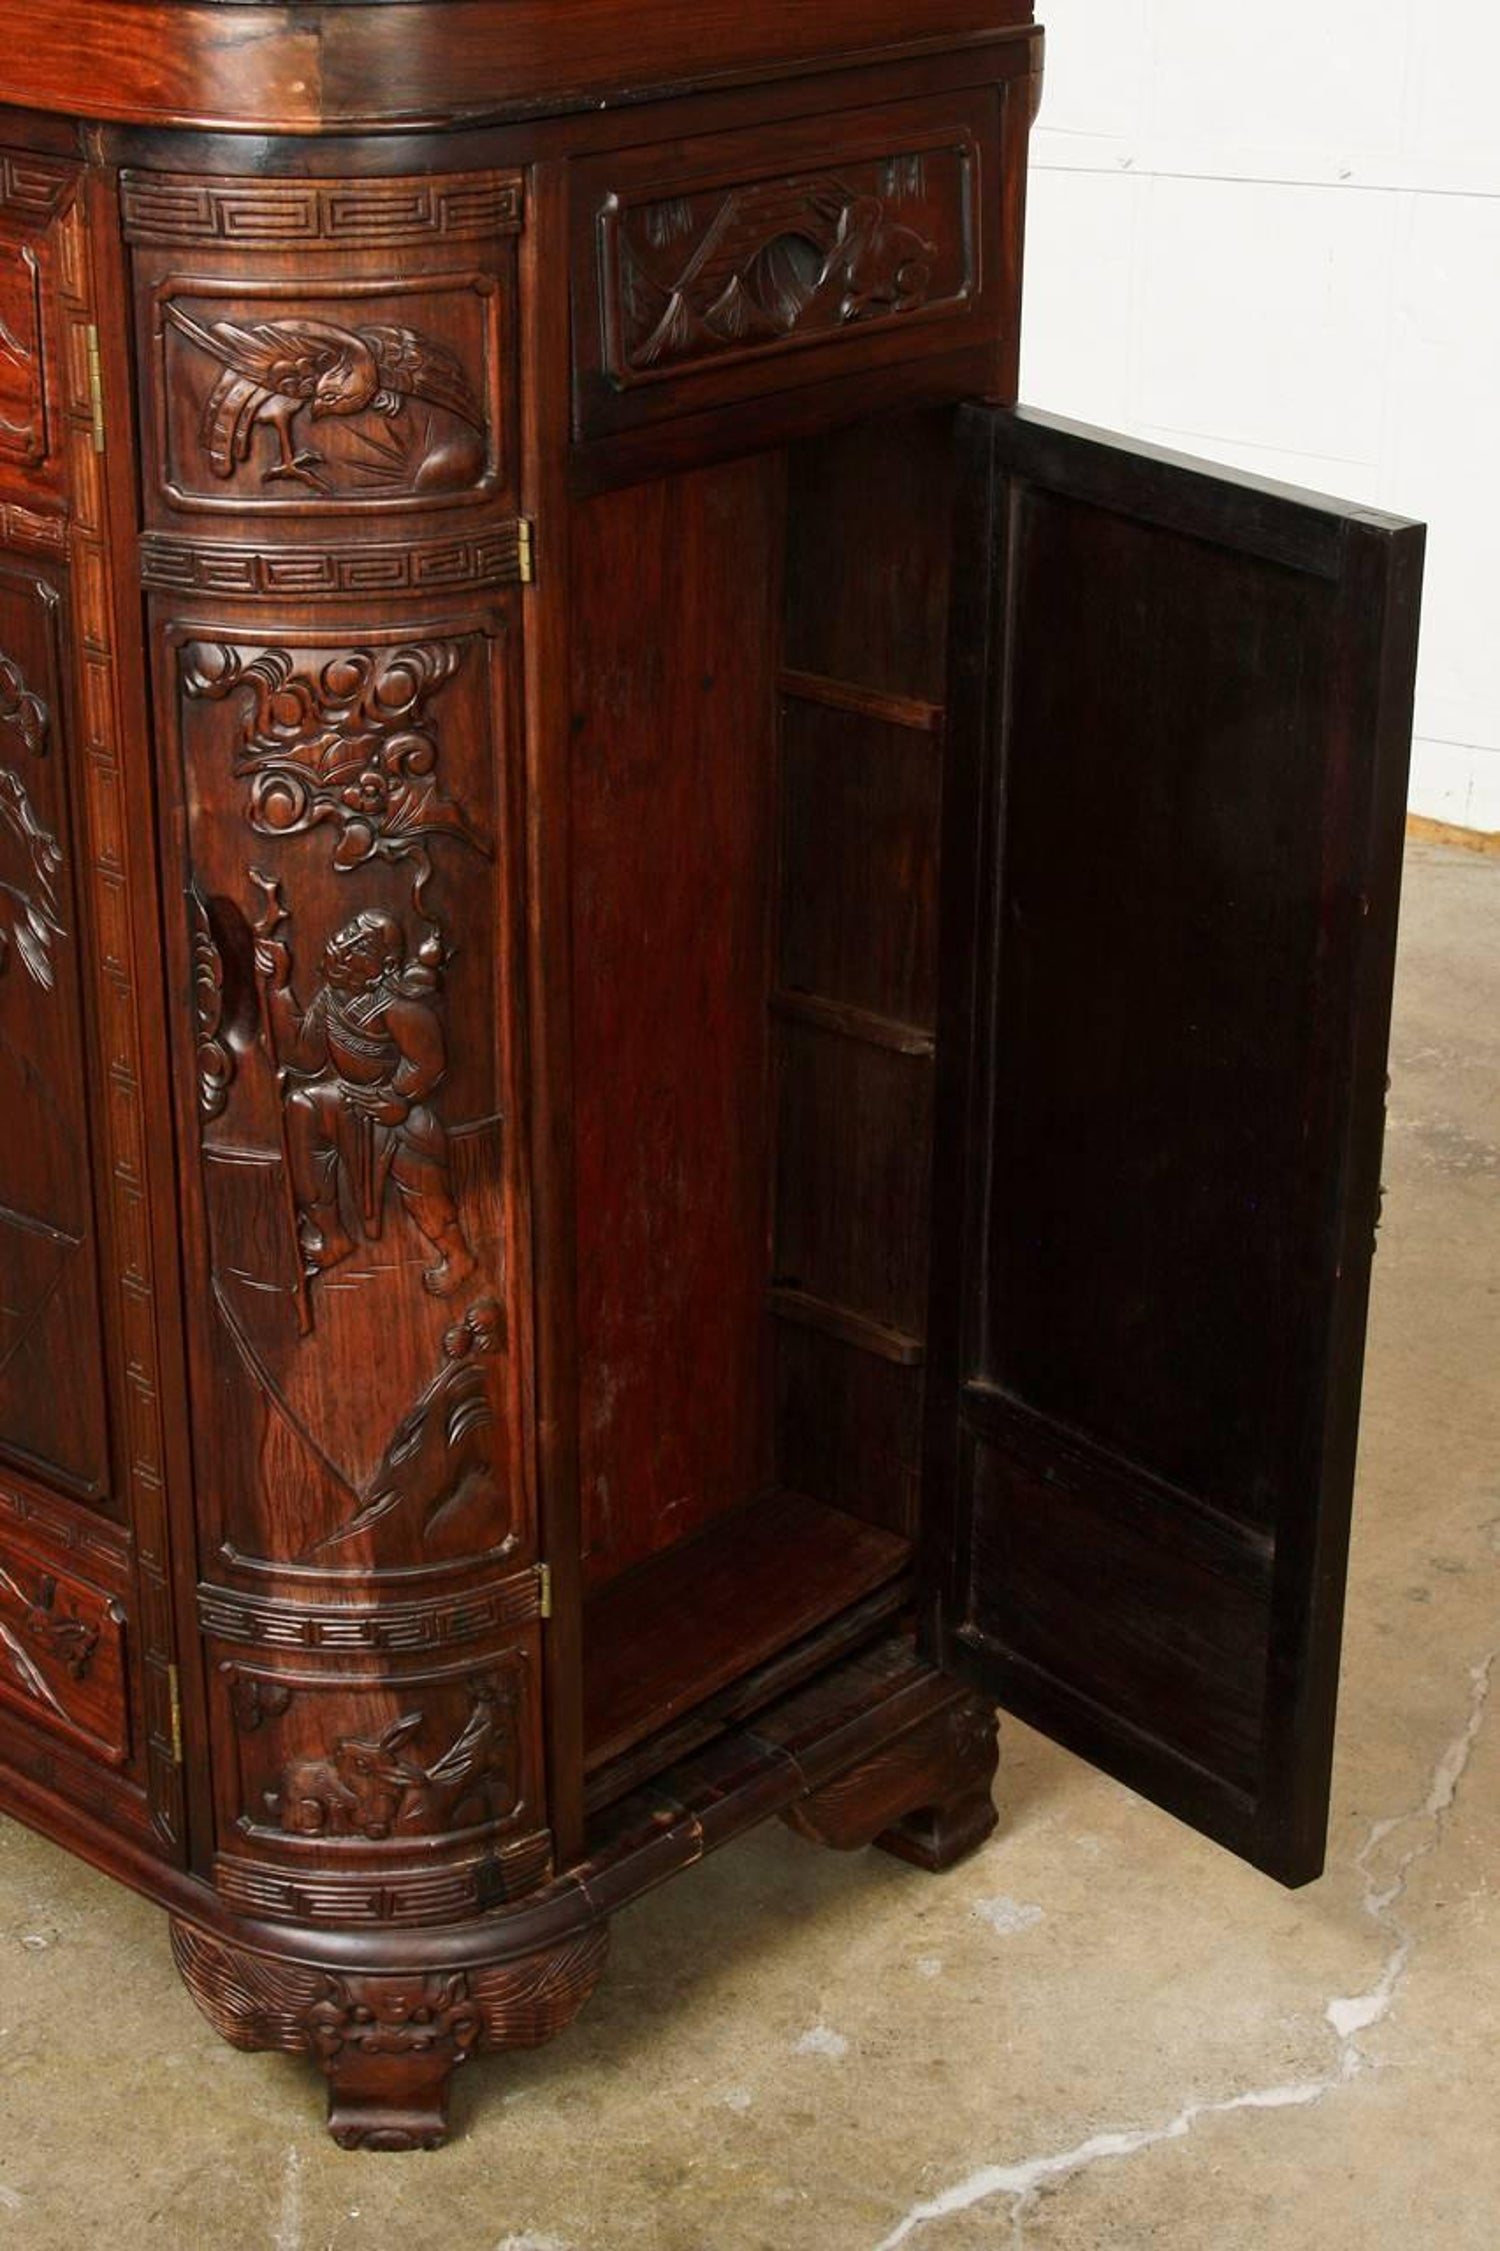 Midcentury Chinese Rosewood Dry Bar Liquor Cabinet For Sale at 1stdibs